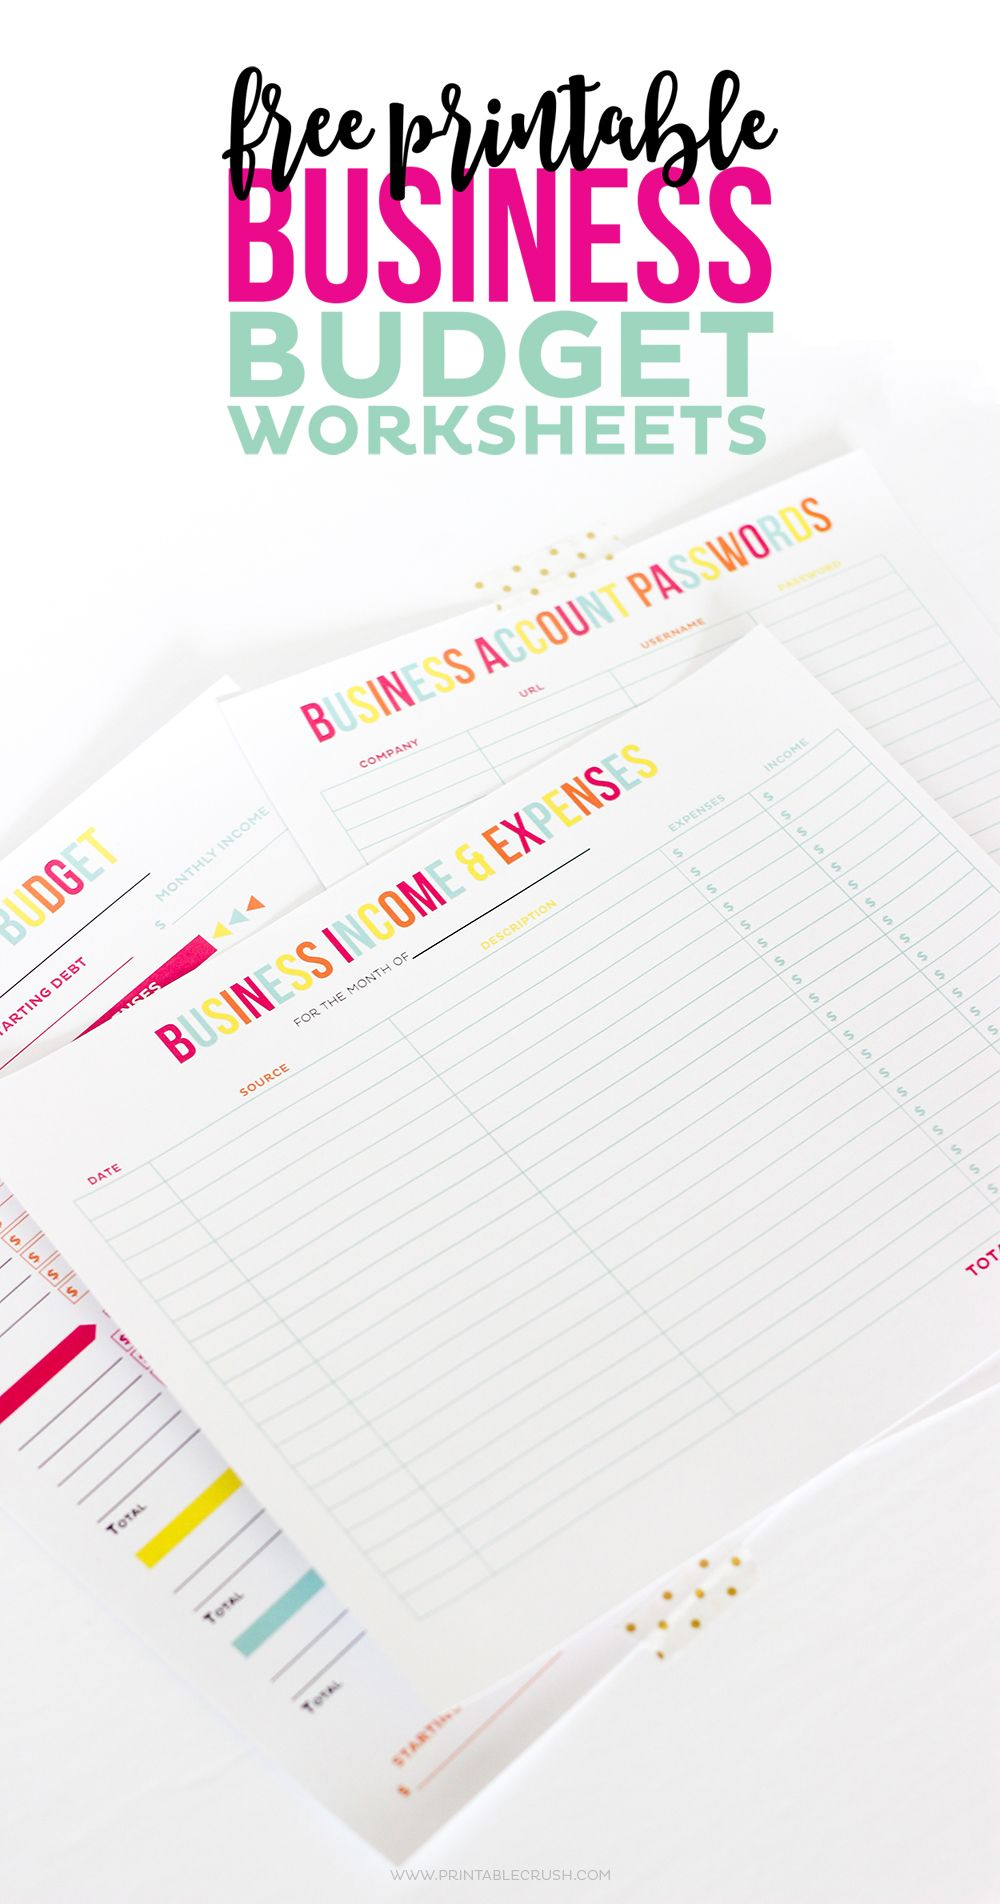 make tax time a little less so with these free printable business